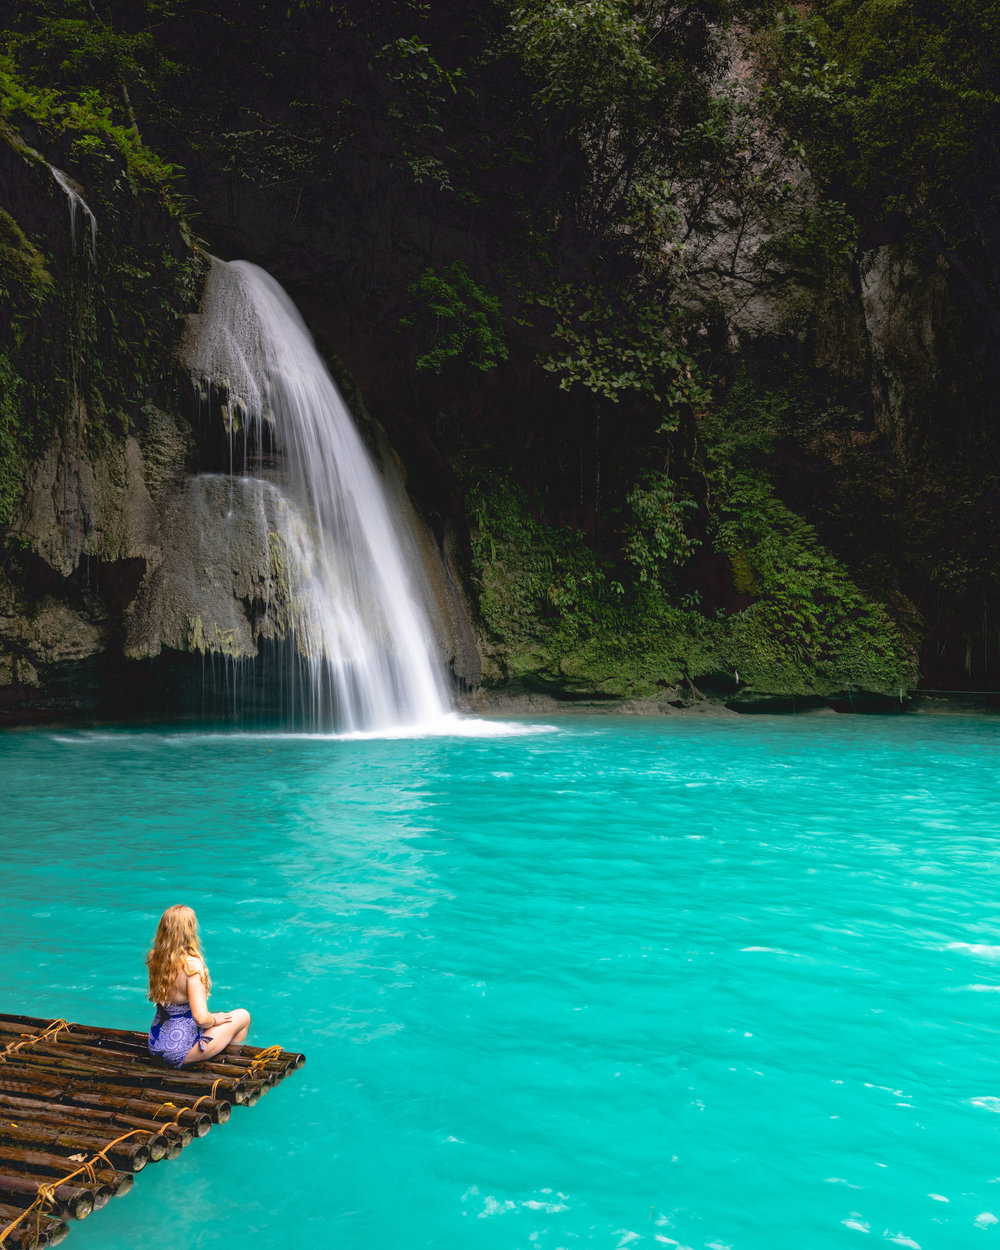 The bottom level of Kawasan Falls in Cebu